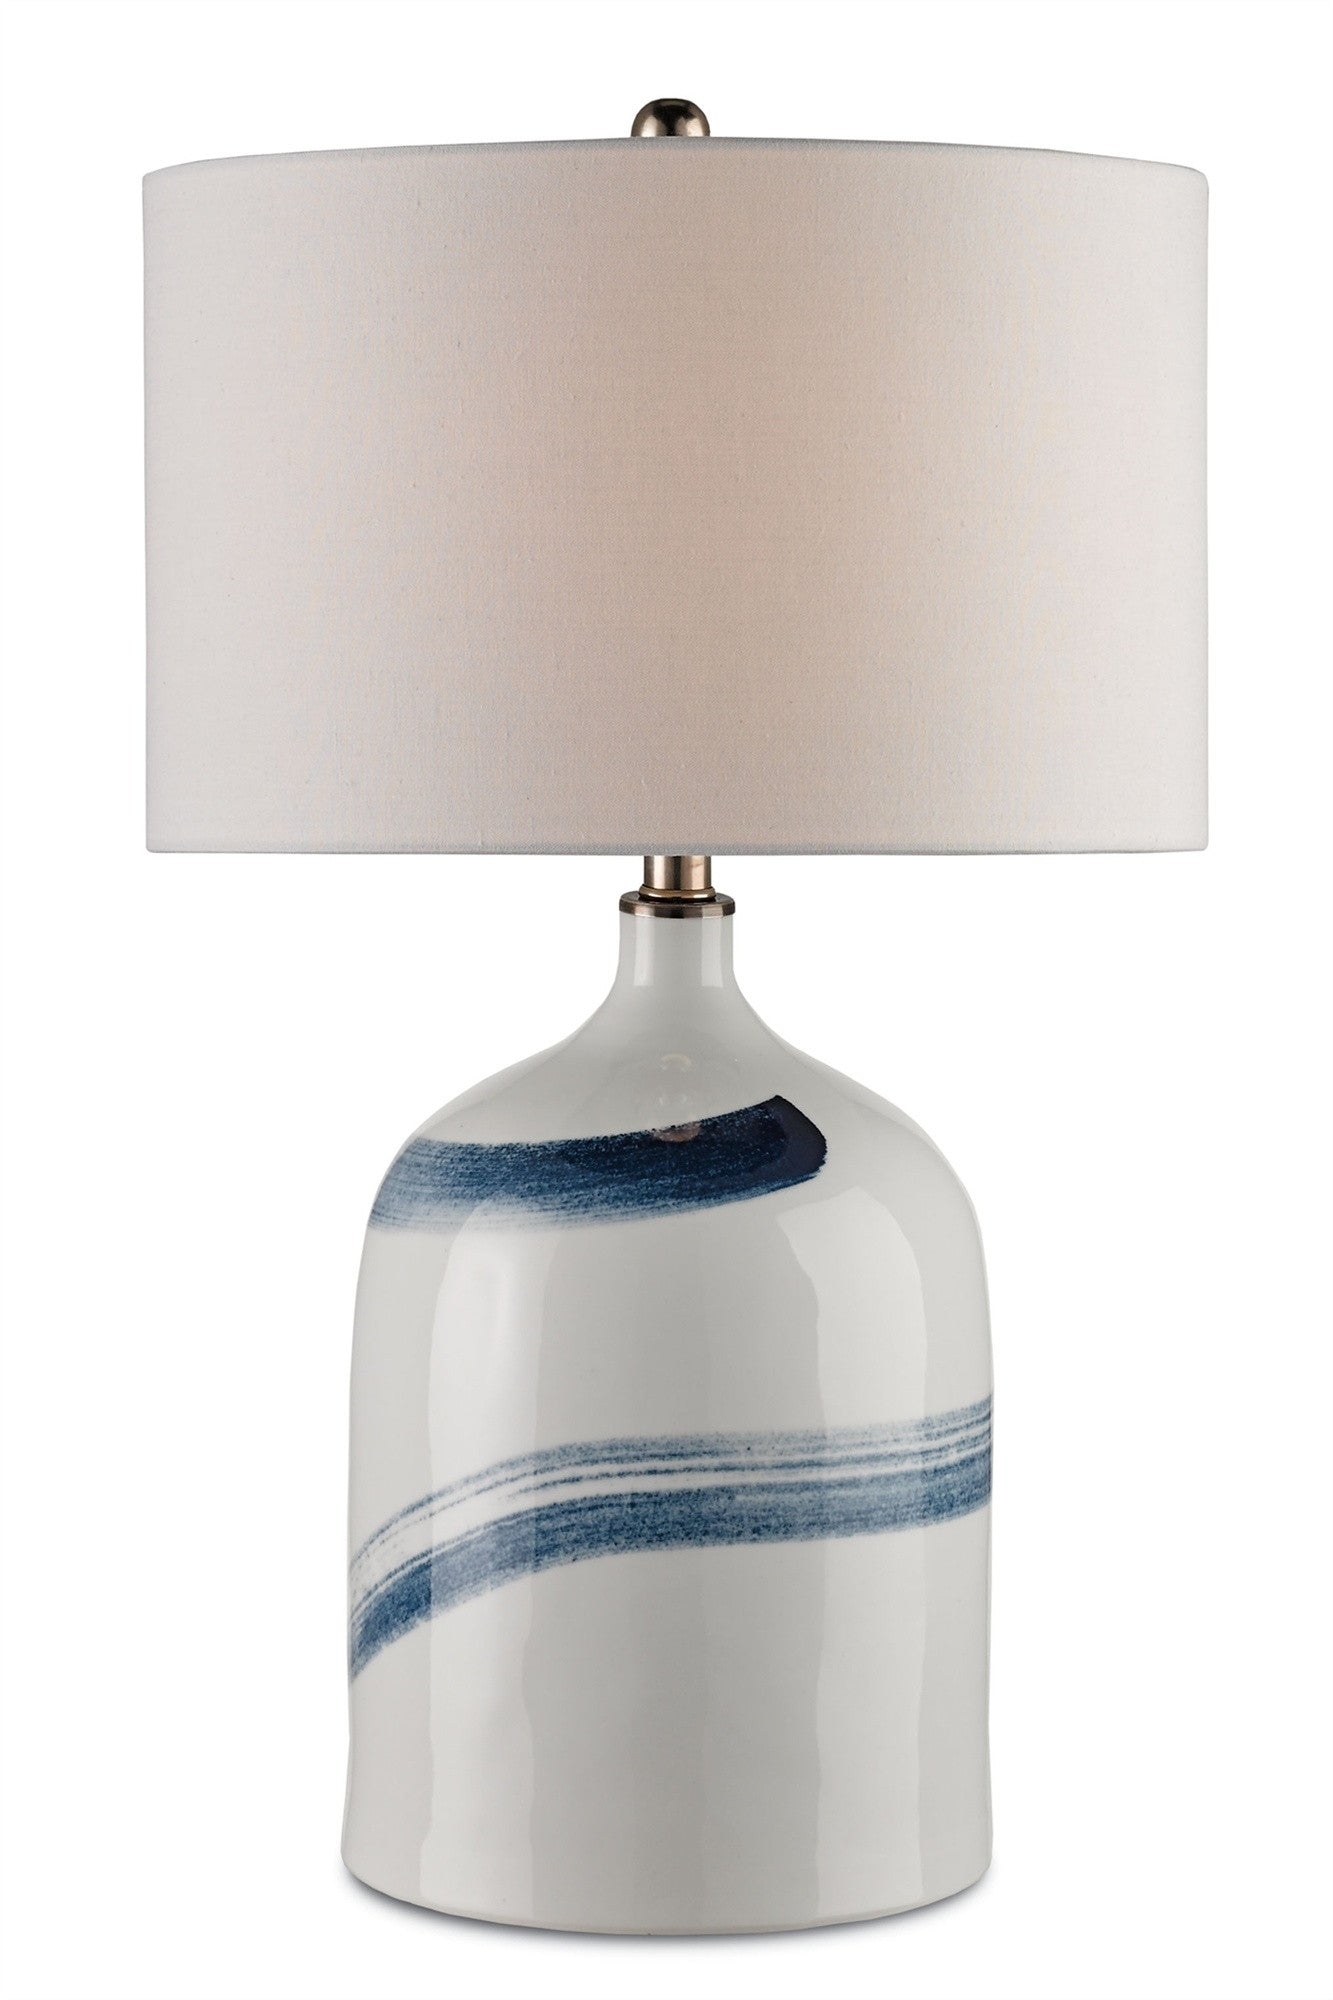 Essay table lamp design by currey company burke decor for Lamp light design company